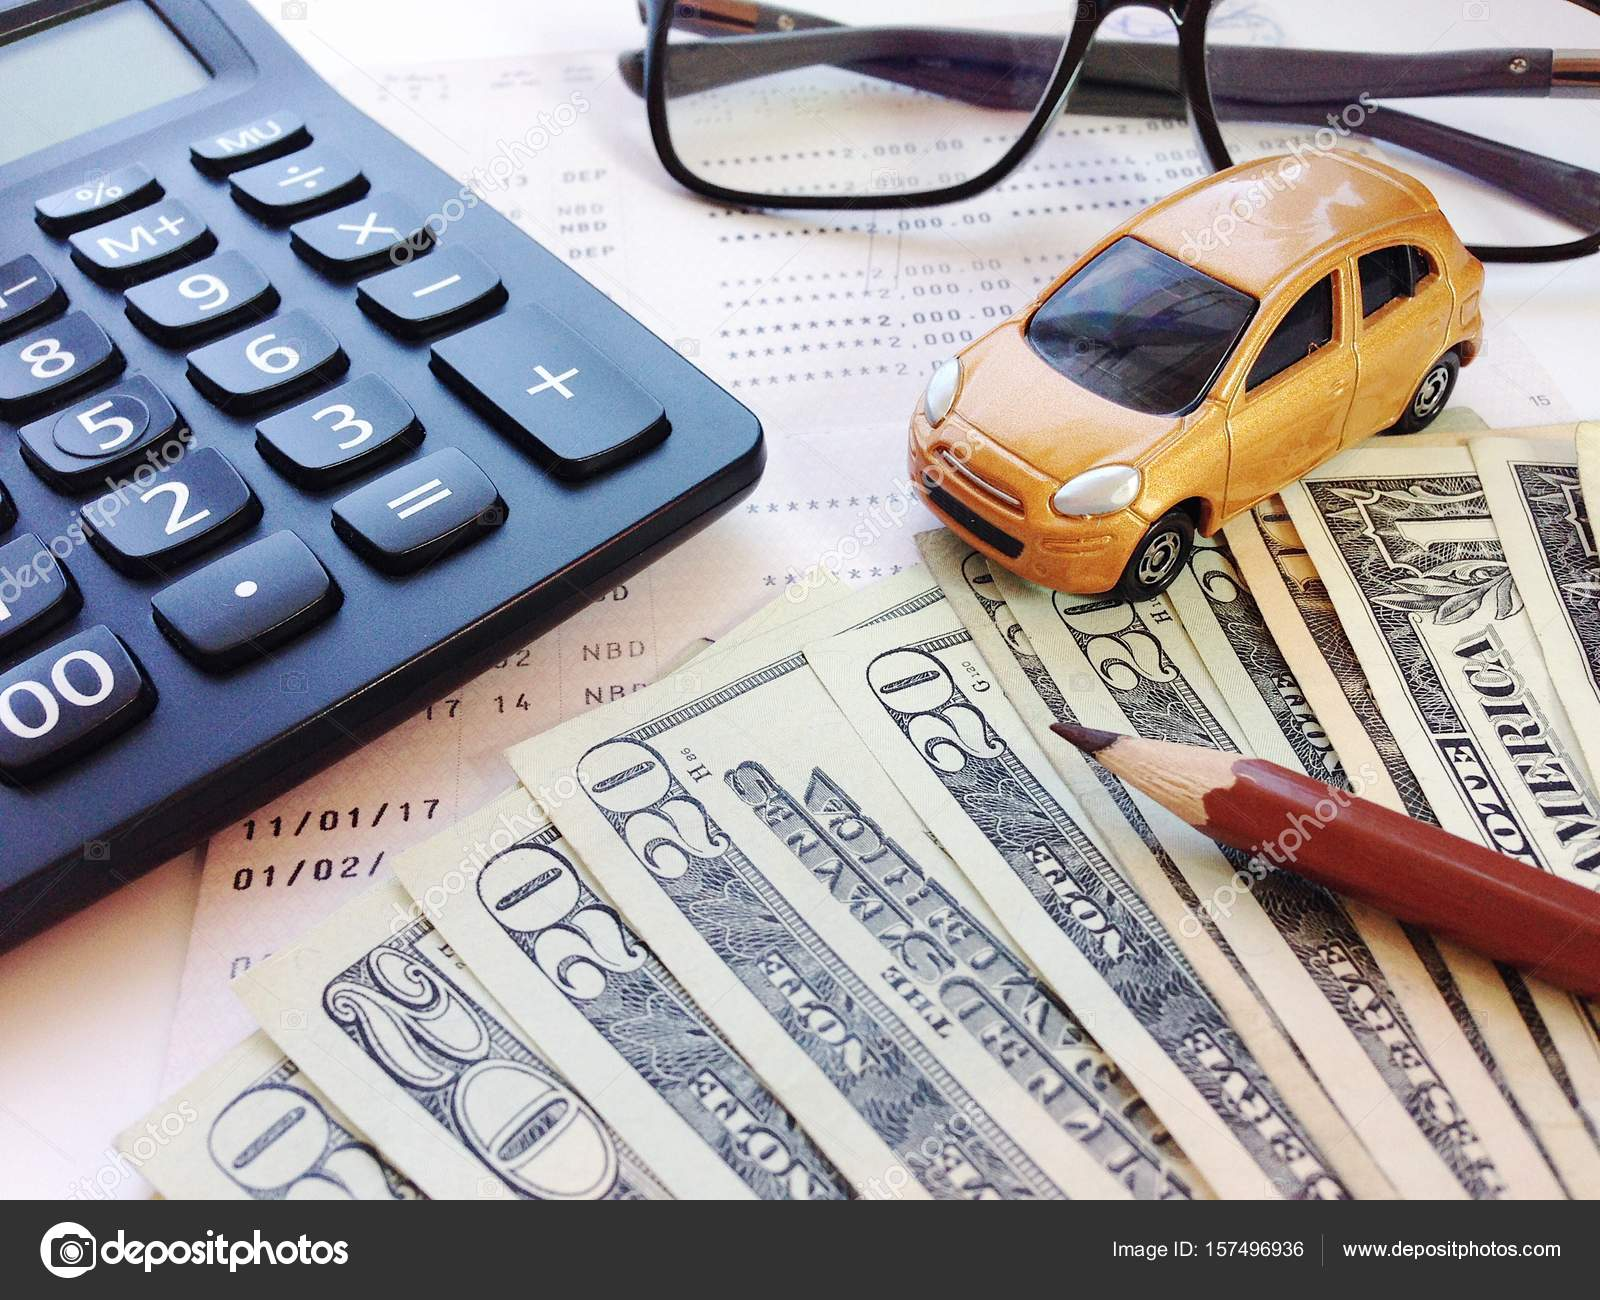 Miniature car model, pencil, money, calculator, eyeglasses and ...